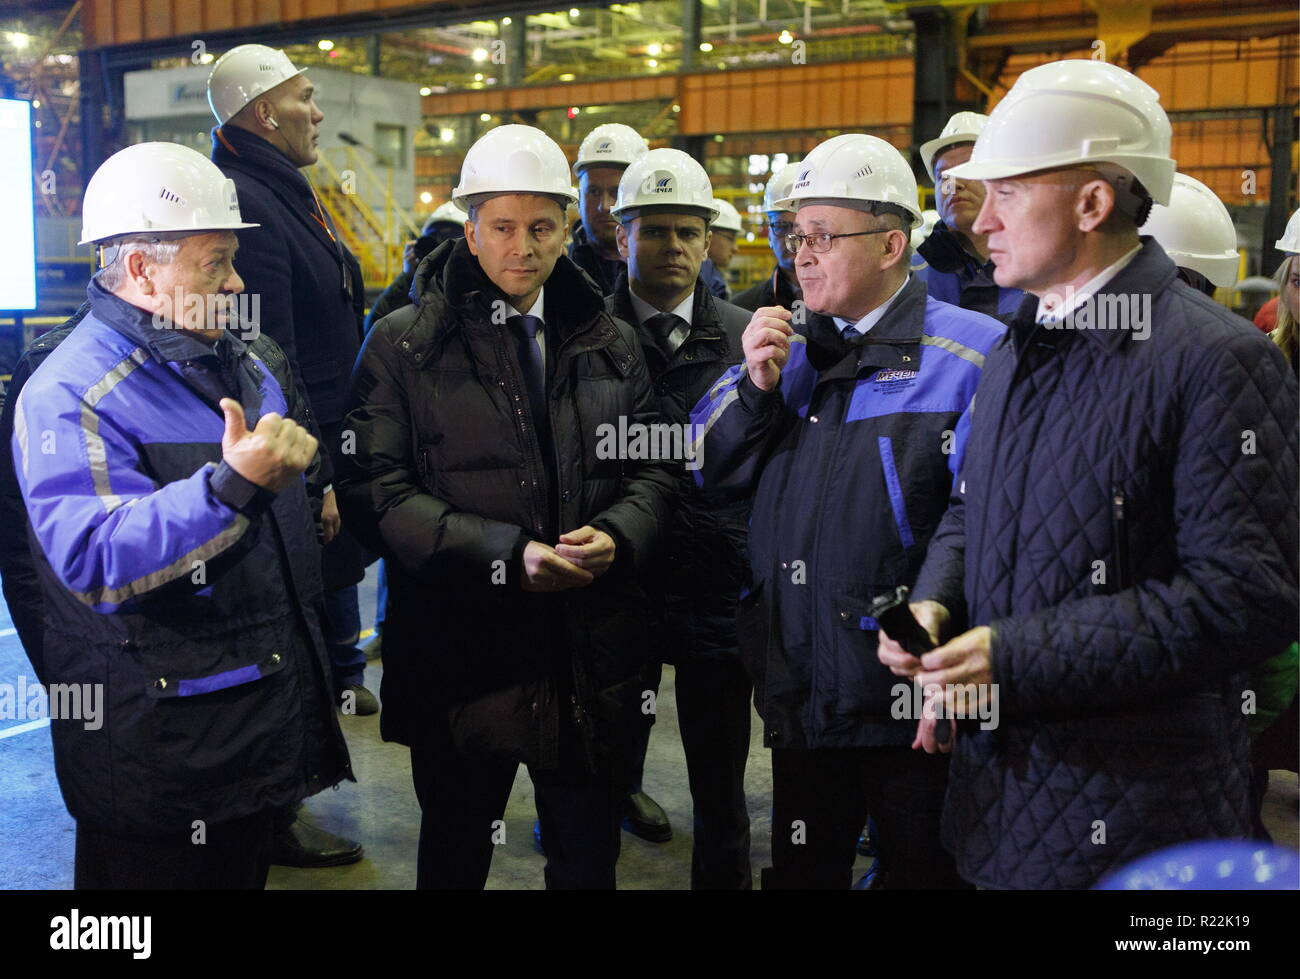 Chelyabinsk, Russia. 16th Nov, 2018. CHELYABINSK, RUSSIA - NOVEMBER 16, 2018: Chairman of the Board of Directors at Mechel Igor Zyuzin (L), Russia's Minister of Natural Resources and Environment, Dmitry Kobylkin (2nd L), and Chelyabinsk Region Governor Boris Dubrovsky (R) visit Chelyabinsk Coke and Chemical Products Plant (Mechel Coke) owned by Mechel, a major producer of metallurgical coal. Nail Fattakhov/TASS Credit: ITAR-TASS News Agency/Alamy Live News - Stock Image